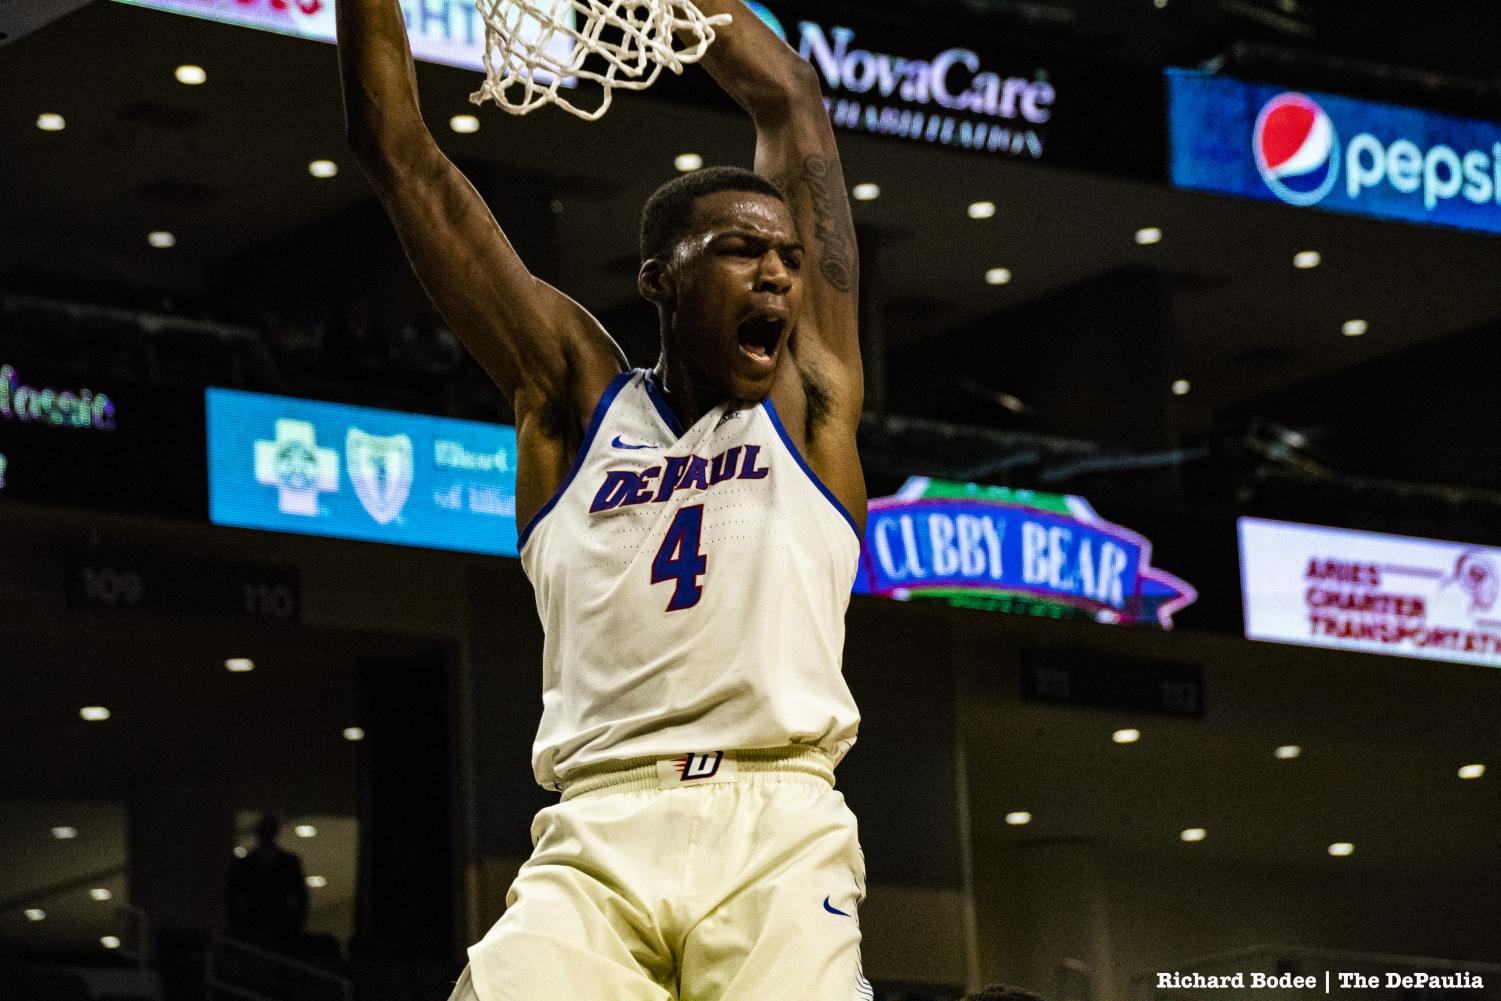 Paul Reed throws down one of many Blue Demon dunks in a 90-70 win against UIC on Friday. Richard Bodee I The DePaulia